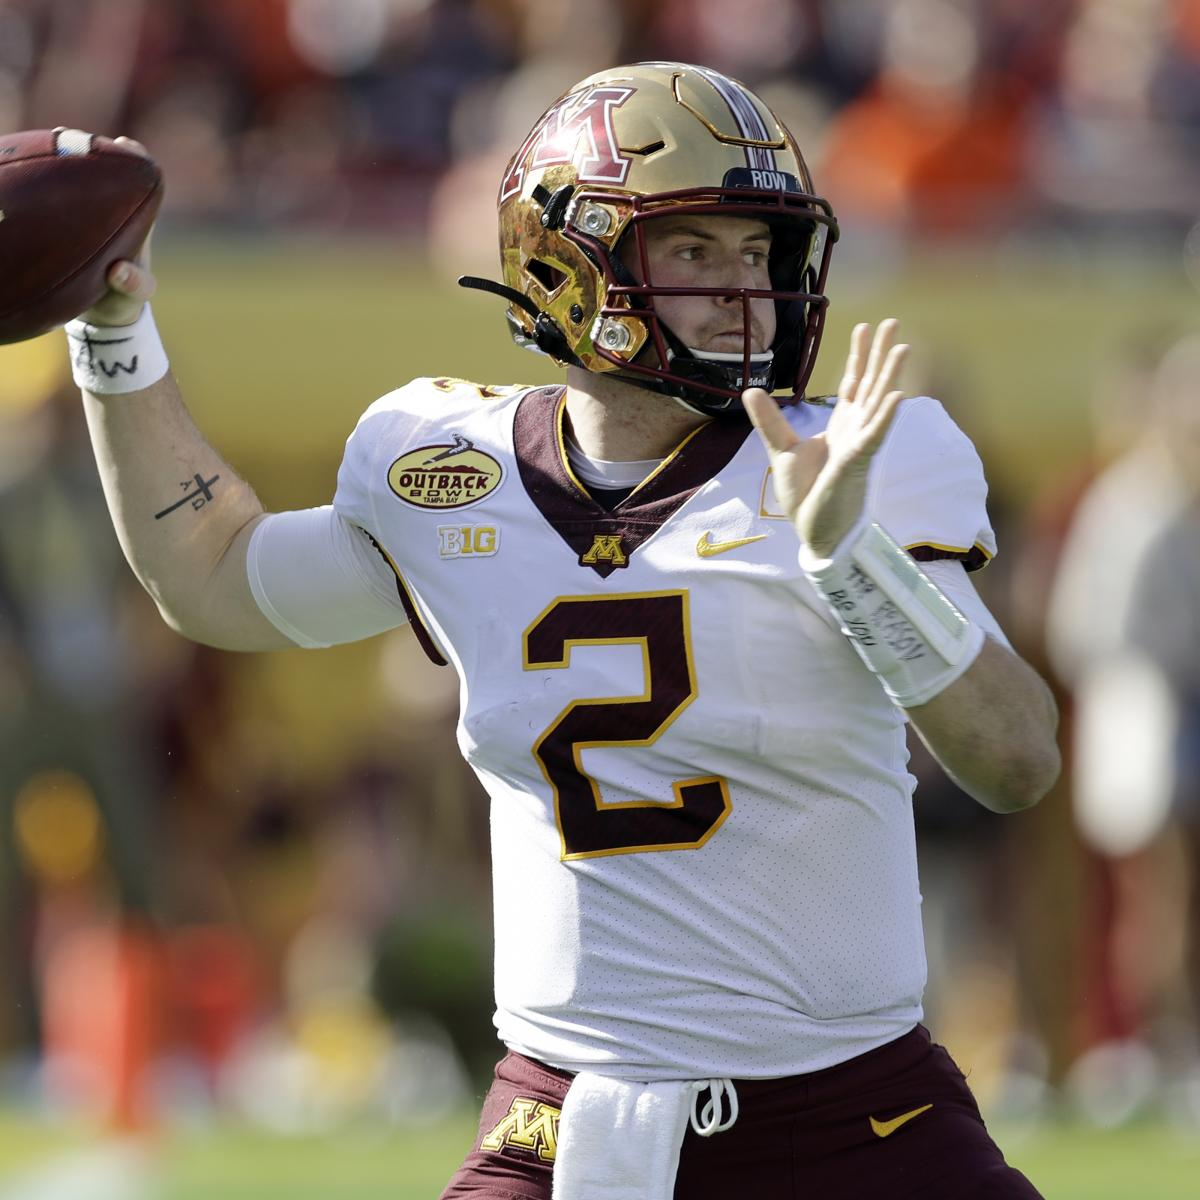 College Football Picks Week 8: Predictions for Top 25 Games on Upcoming Schedule